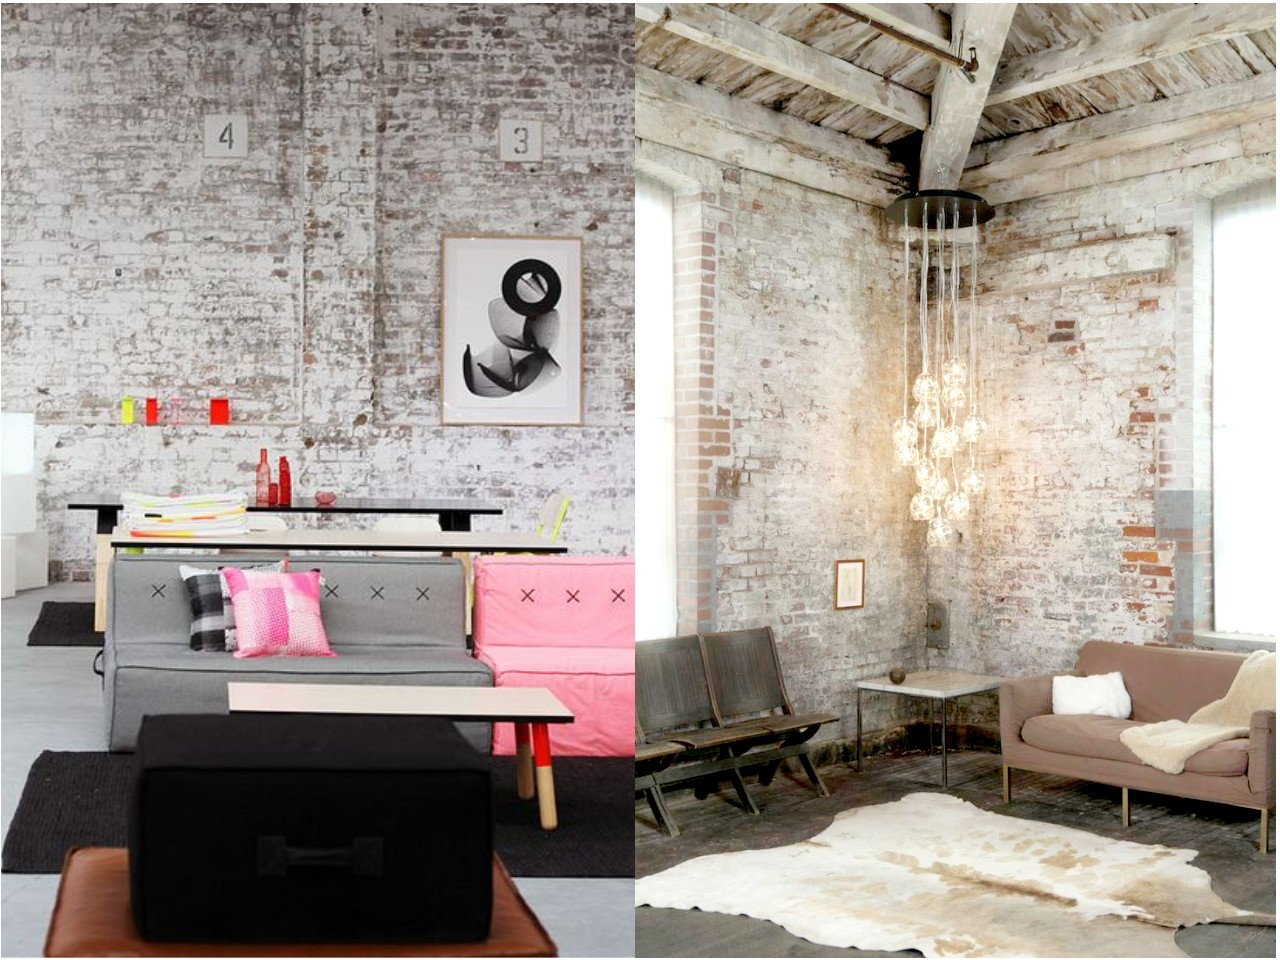 6 claves para una decoraci n vintage industrial que te - Decoraciones para la pared ...